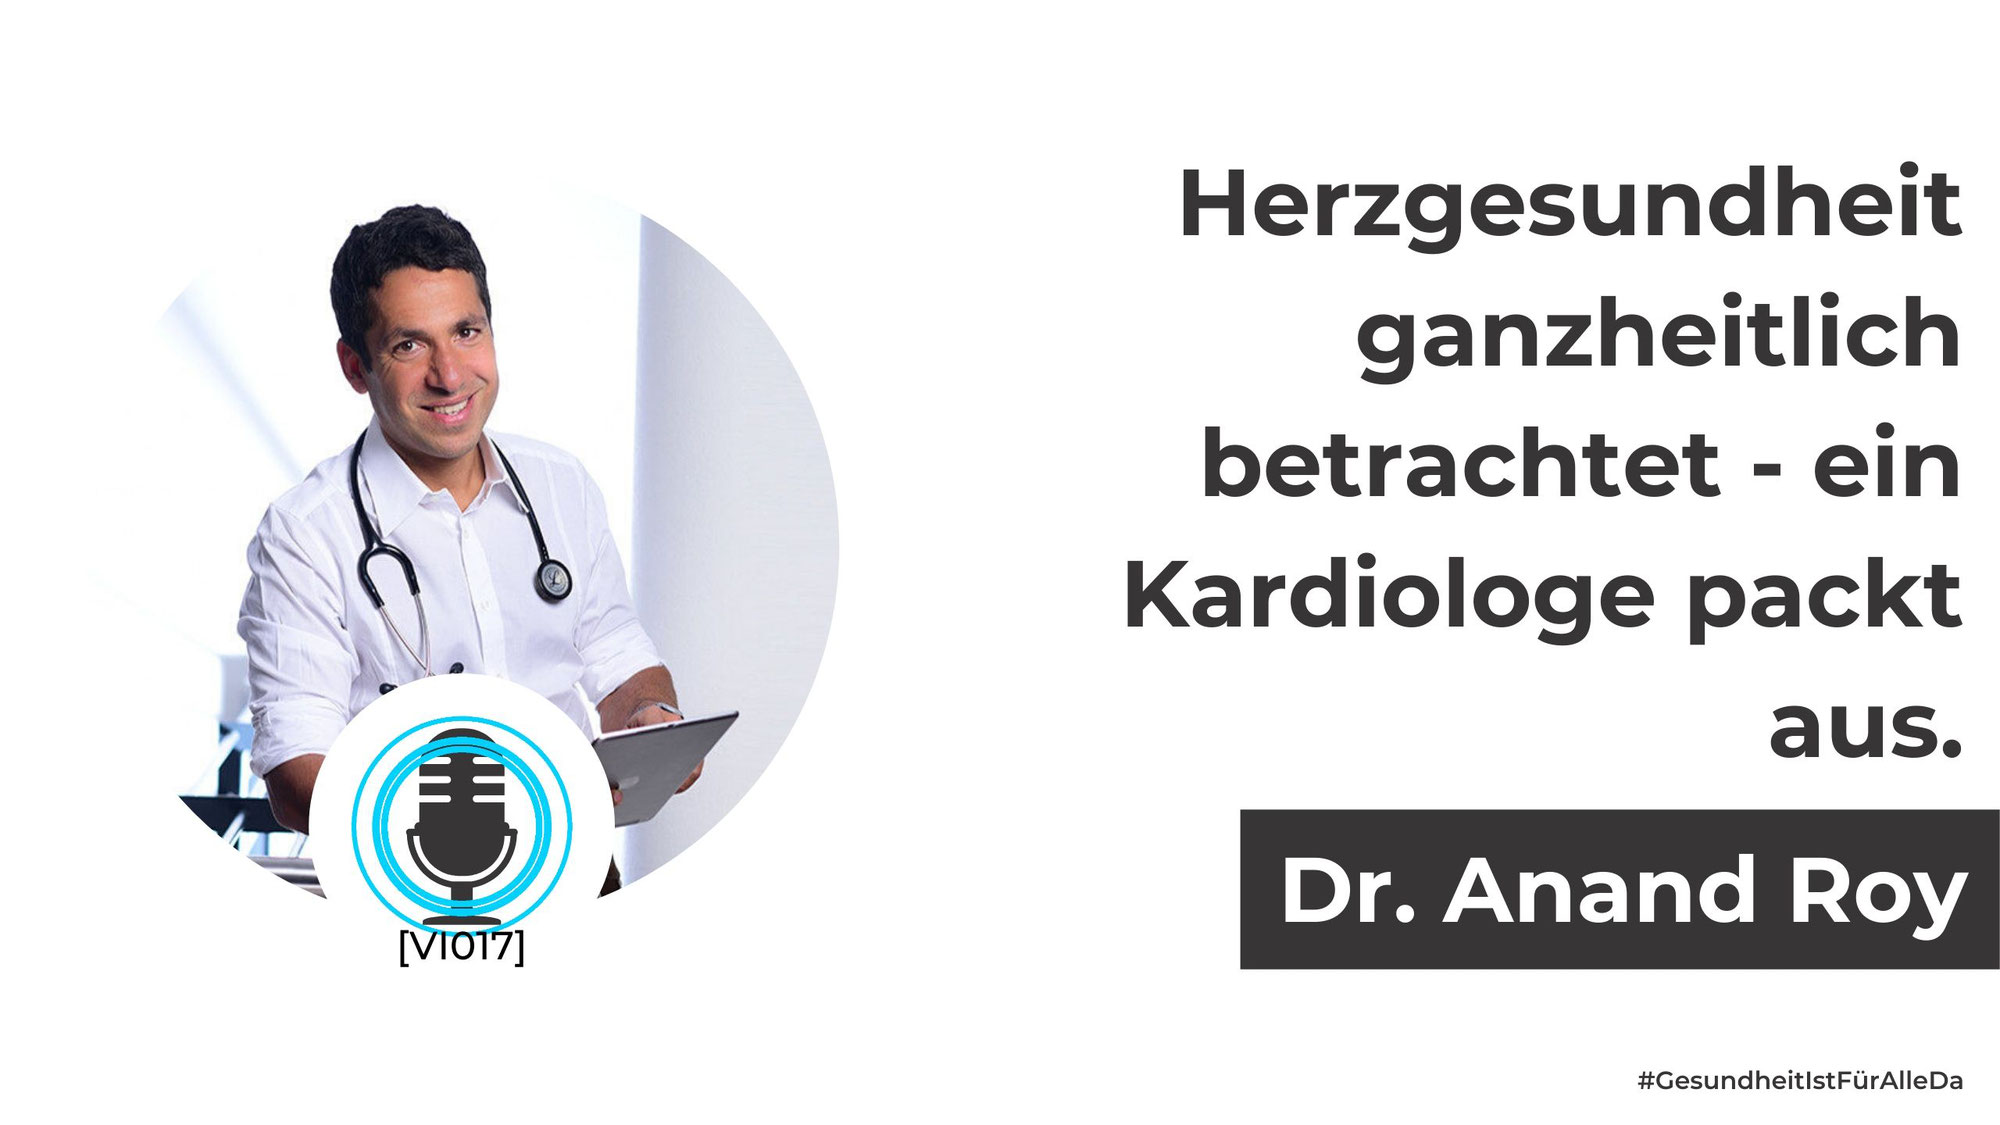 Dr. Anand Roy.